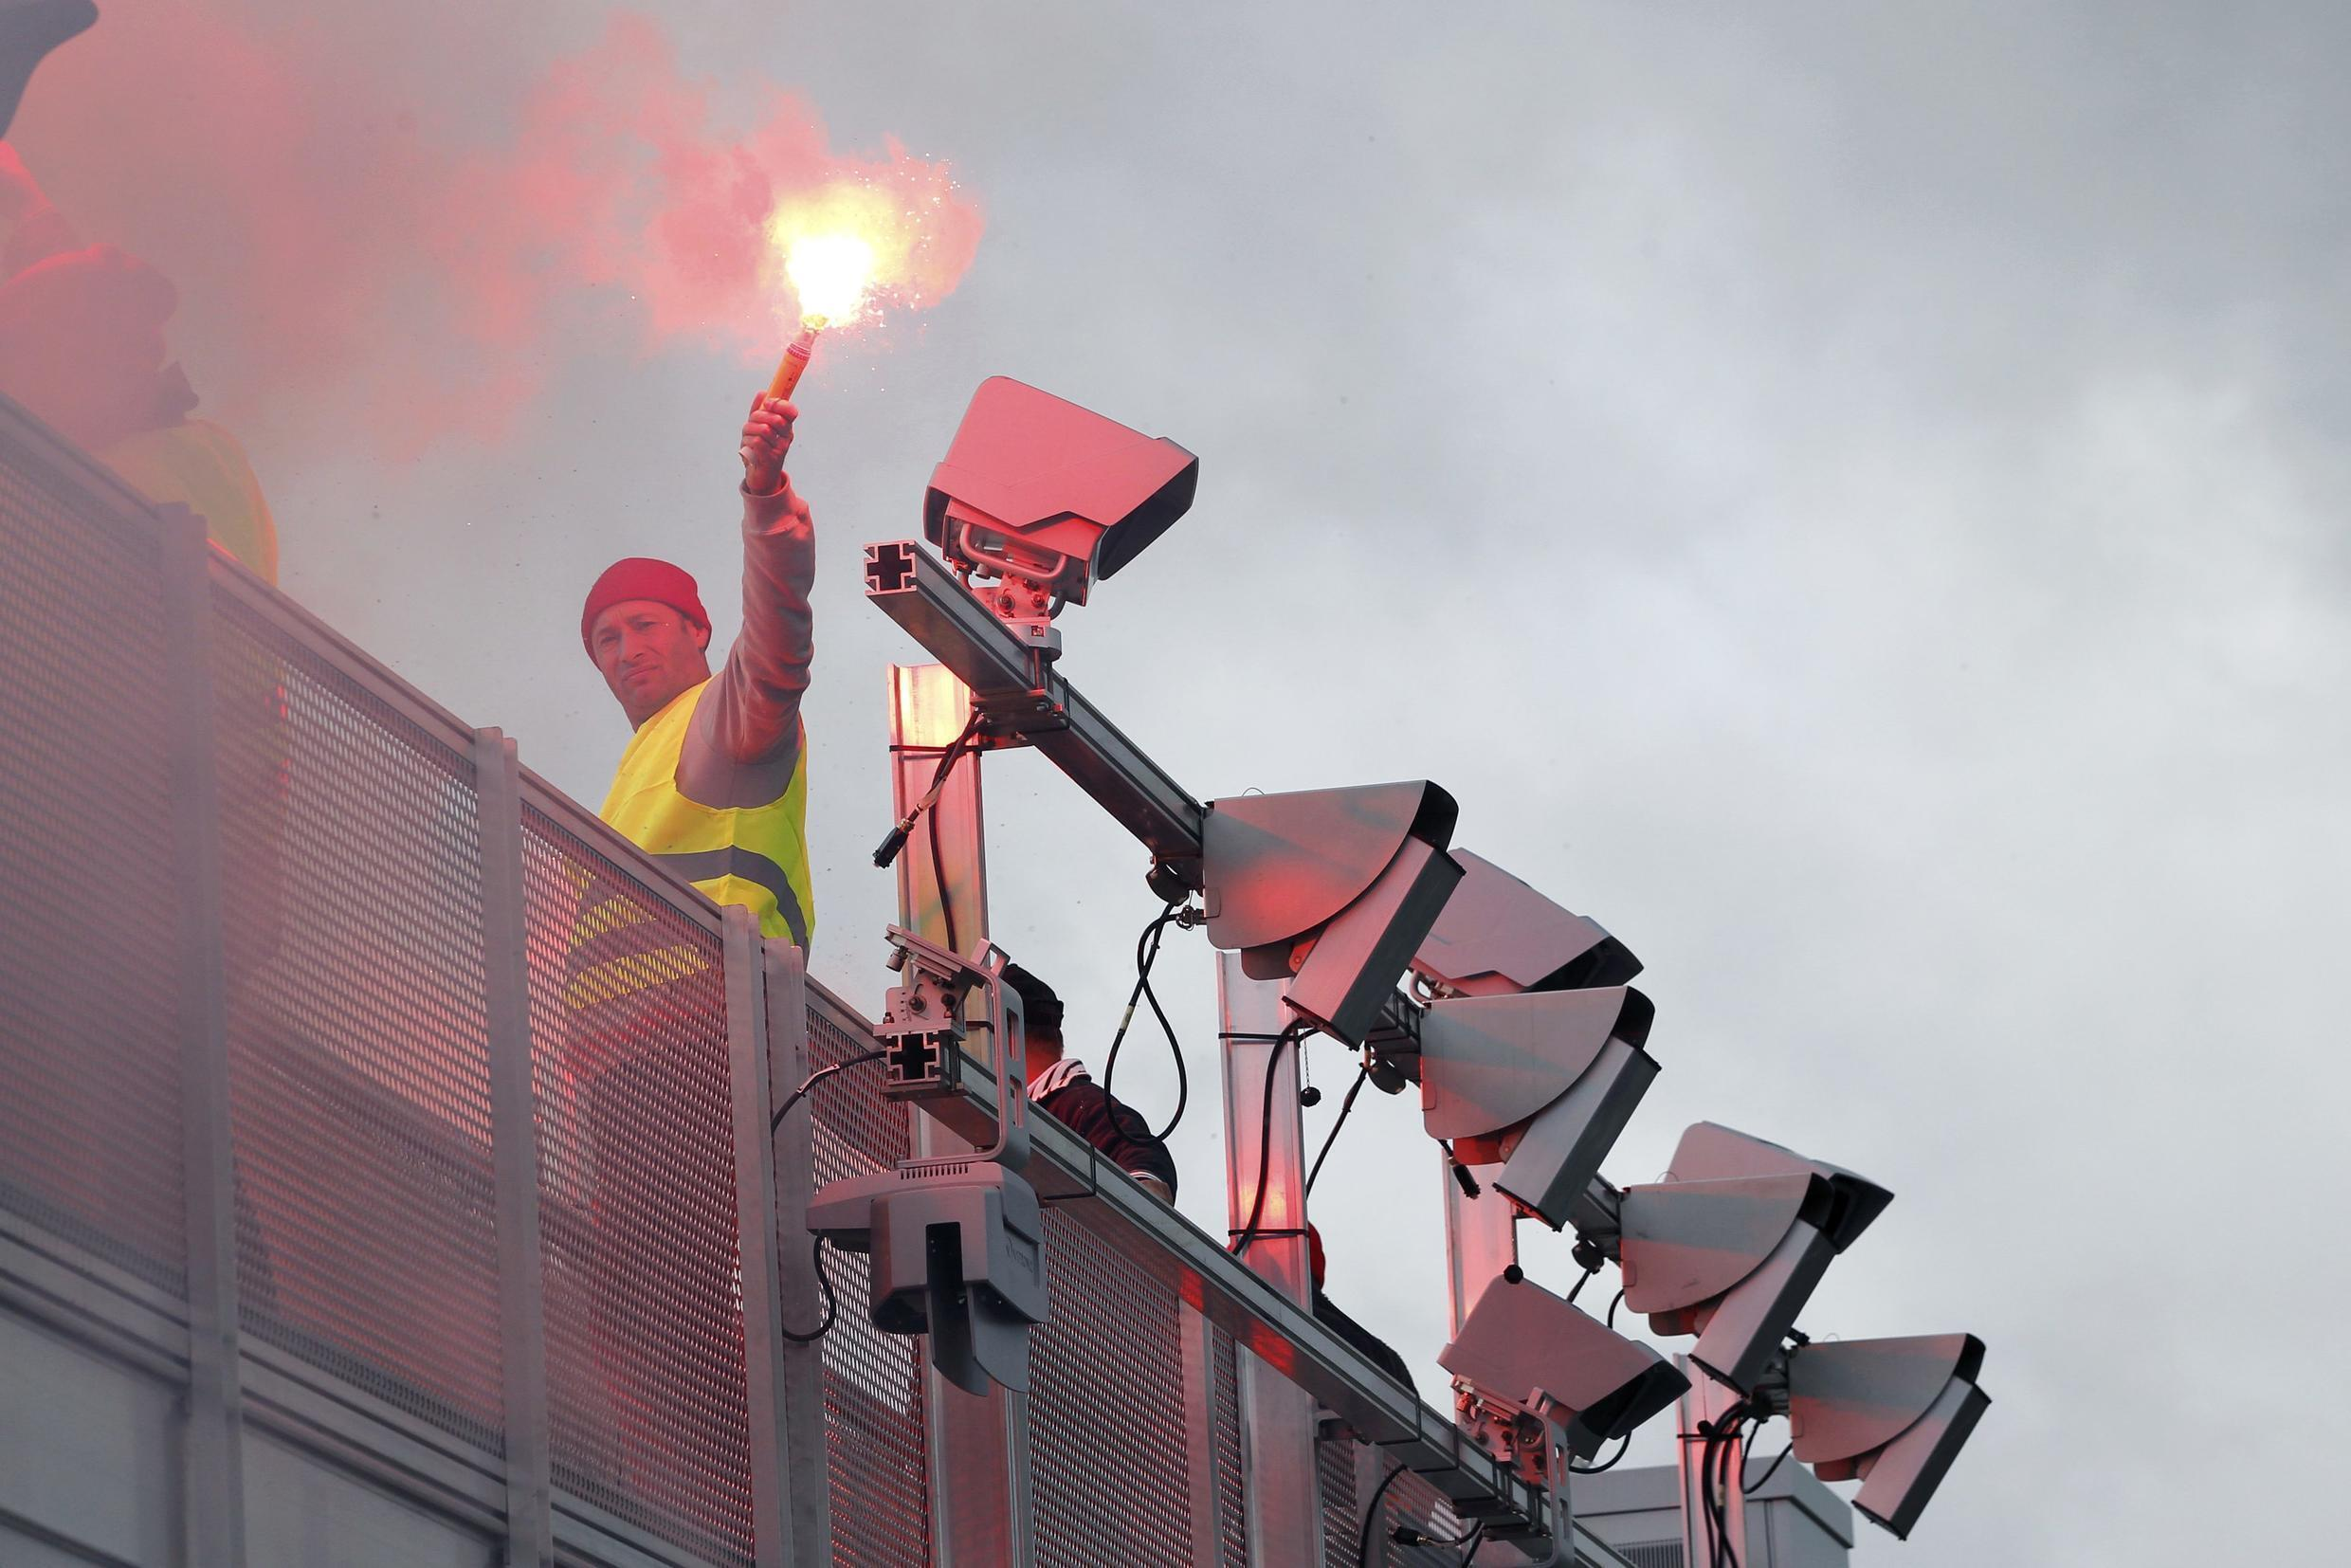 A protester holding a safety flare during a protest against the ecotax in Brittany last weekend